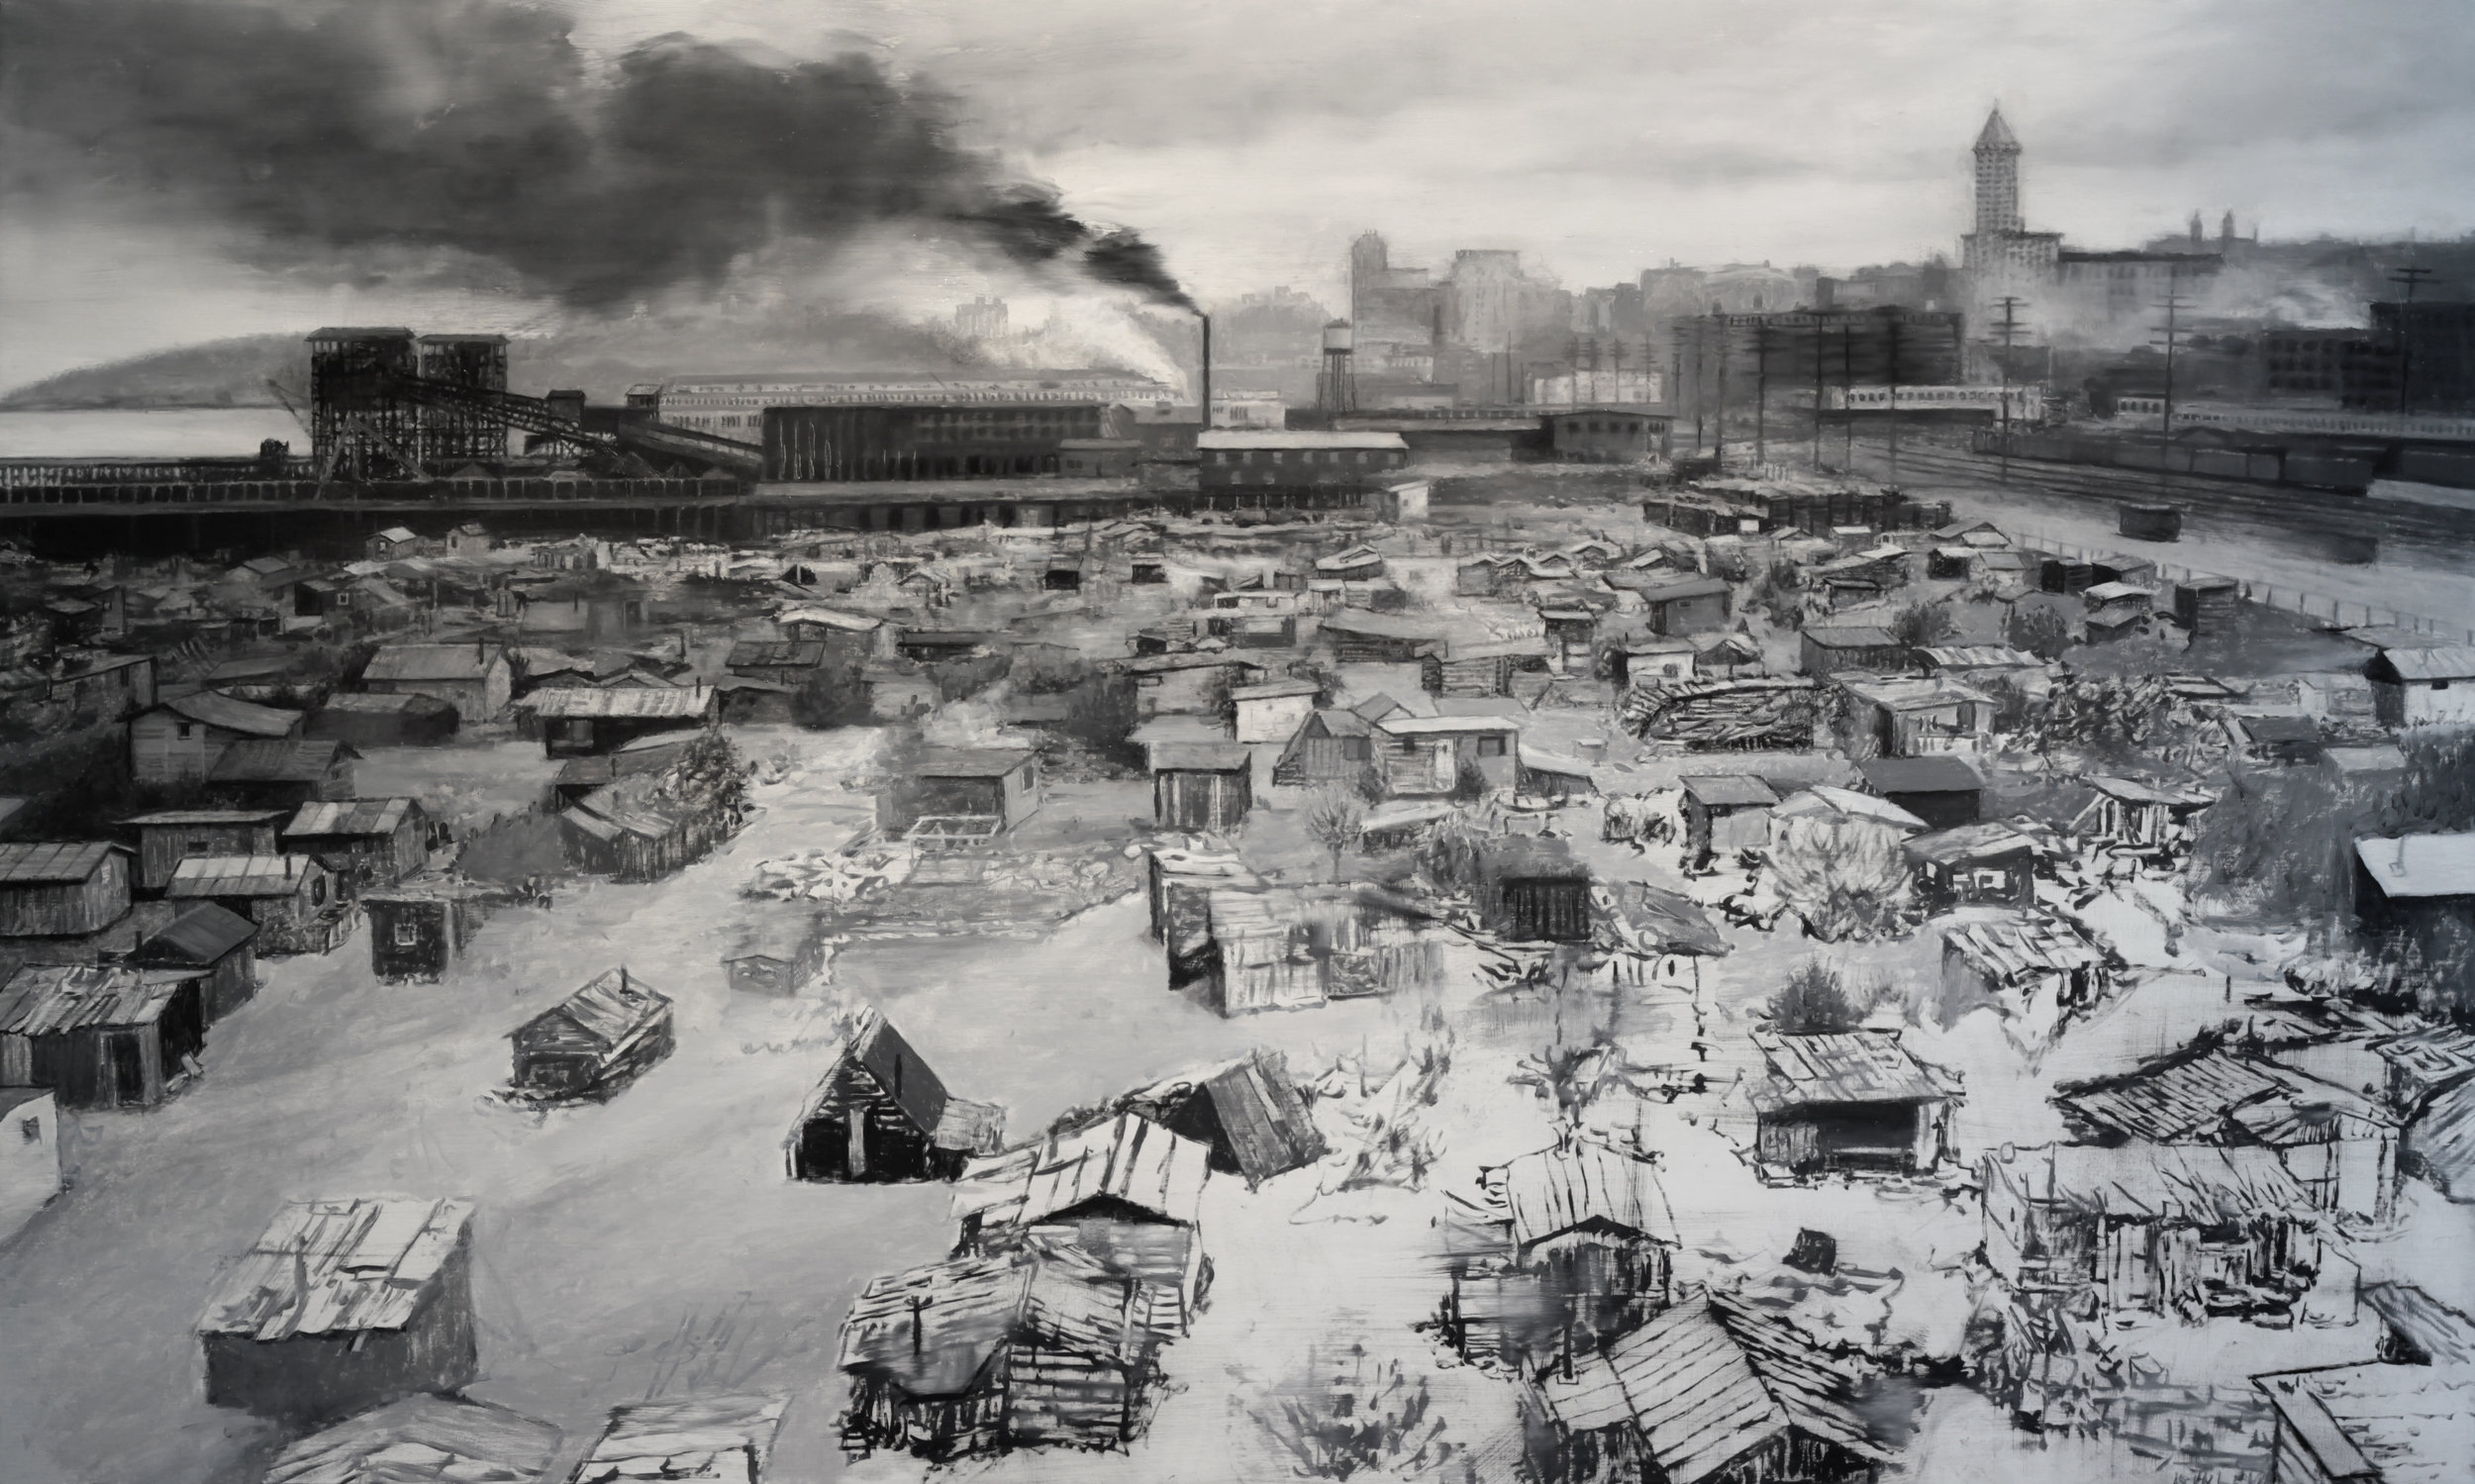 Hooverville, 36 x 60